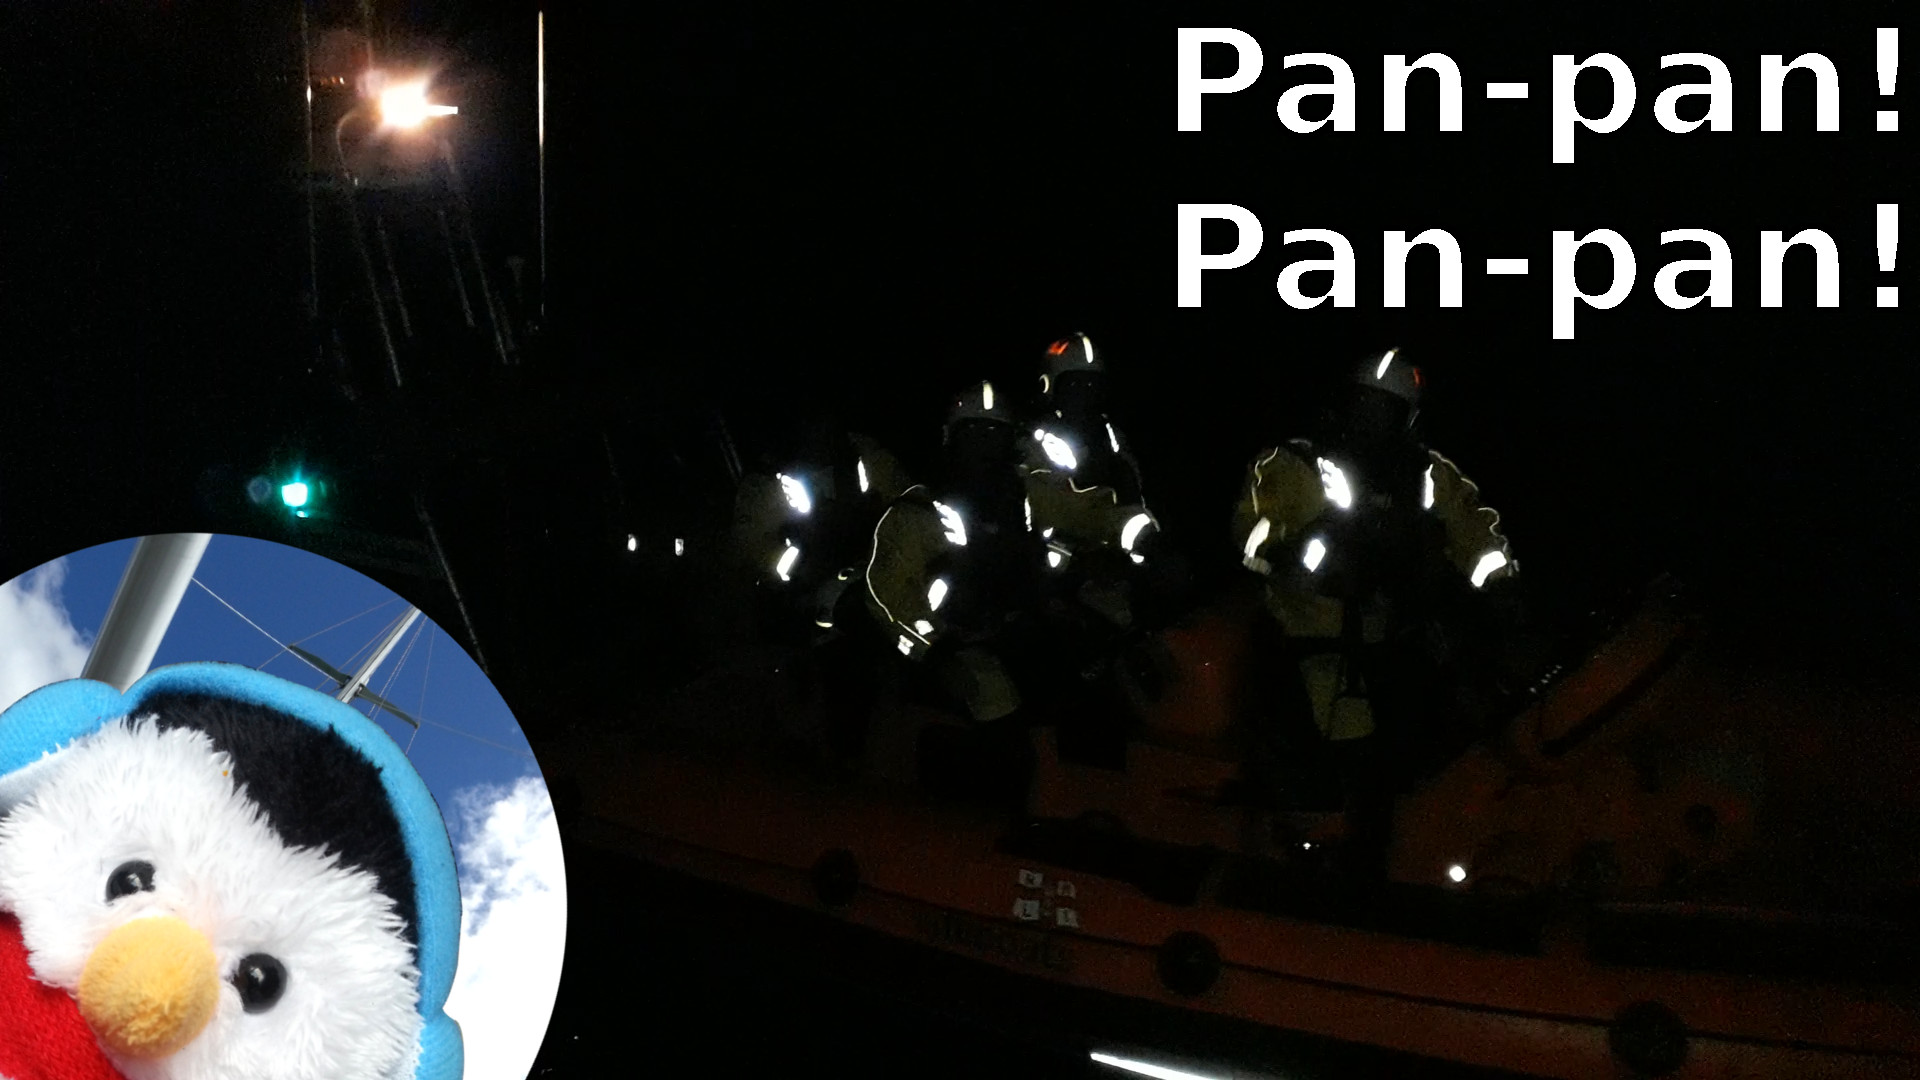 Watch our 'Pan Pan' video and add comments etc.